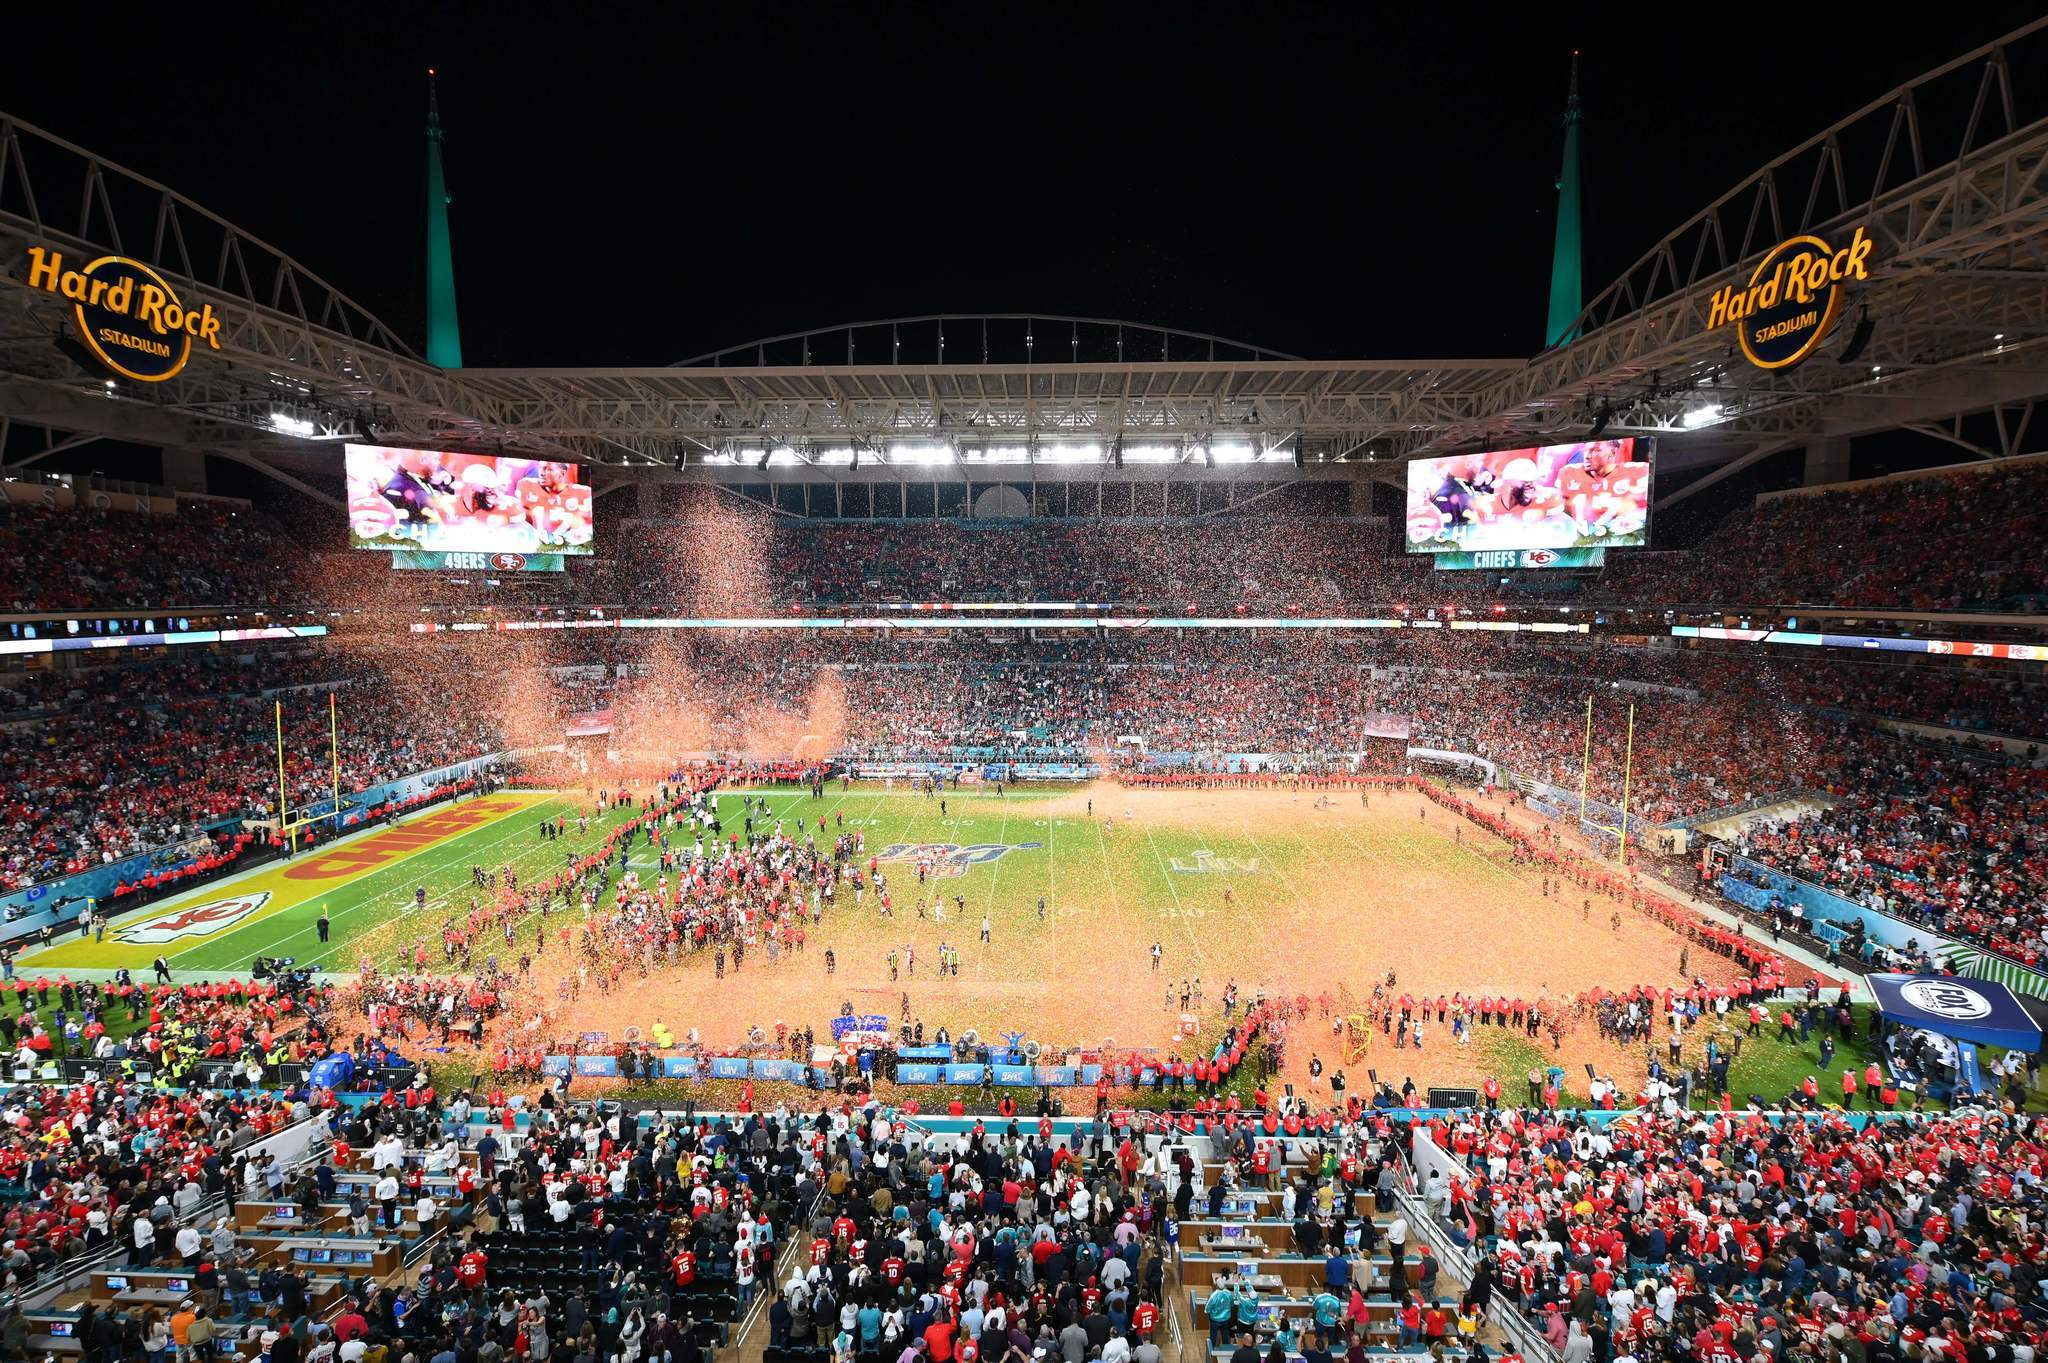 Coronavirus may have spread at Super Bowl in Miami, Florida governor says